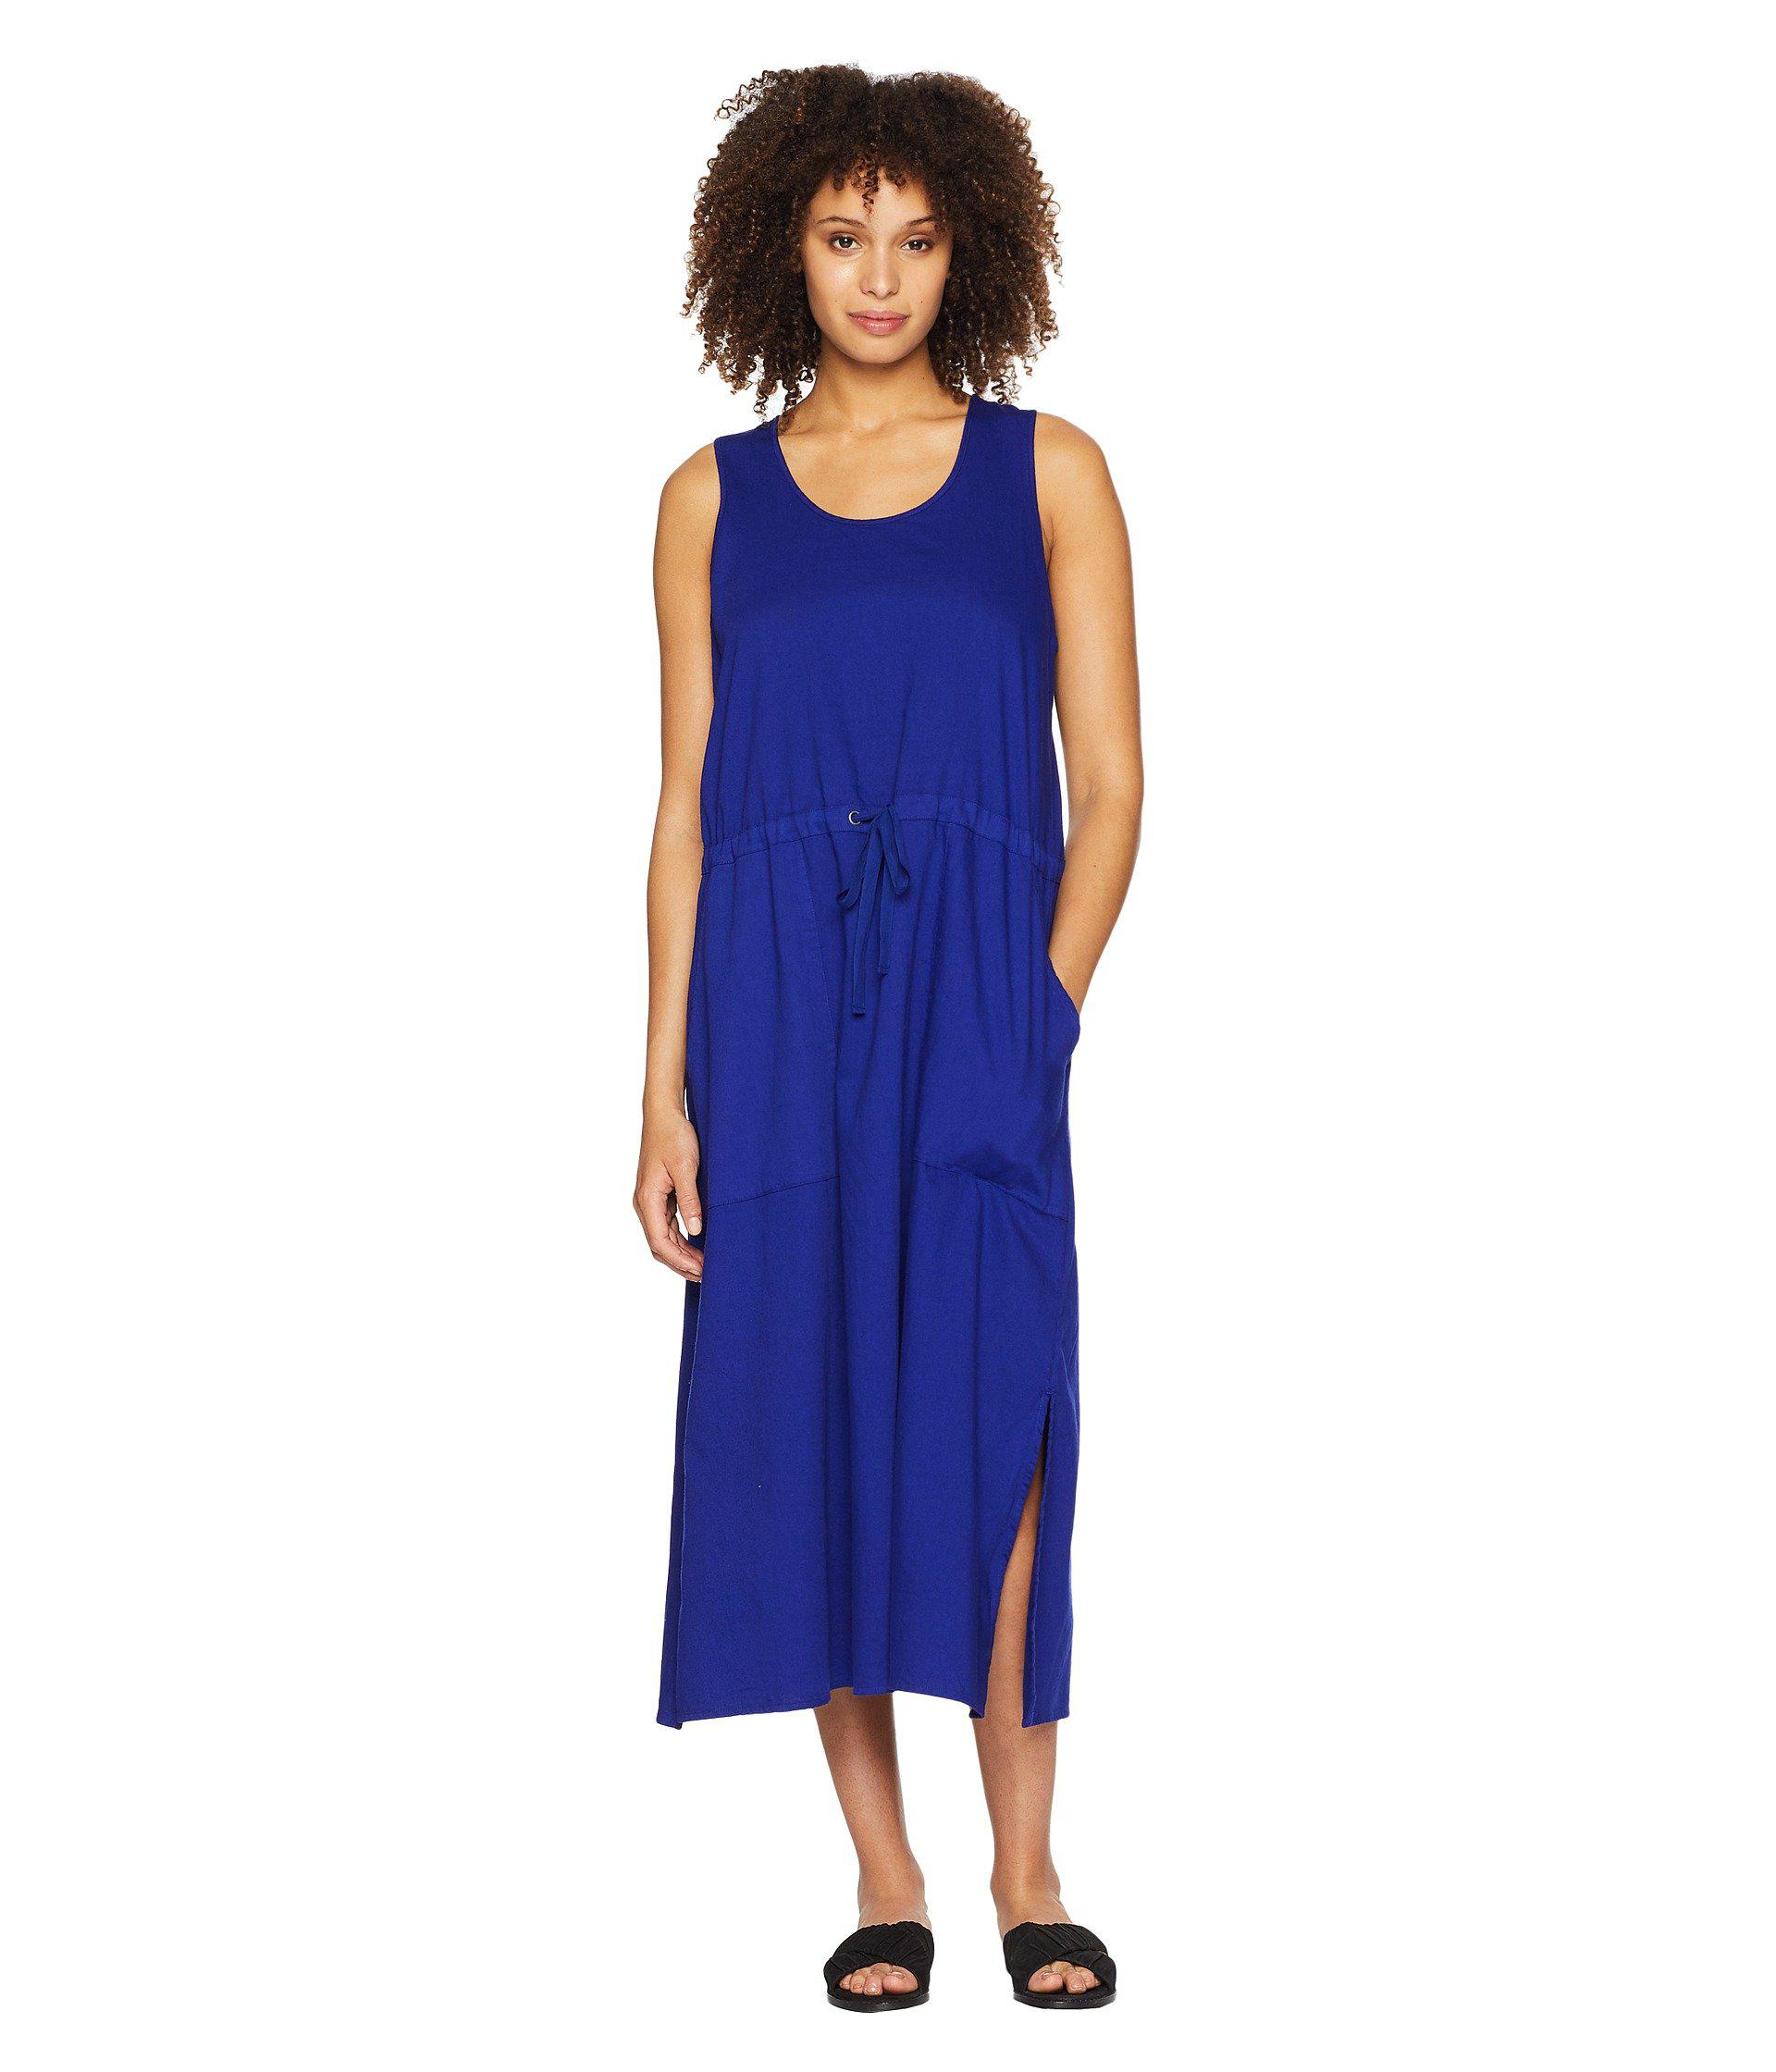 a69cd96cdd18fc Lyst - Eileen Fisher Scoop Neck C l Dress in Blue - Save 24%